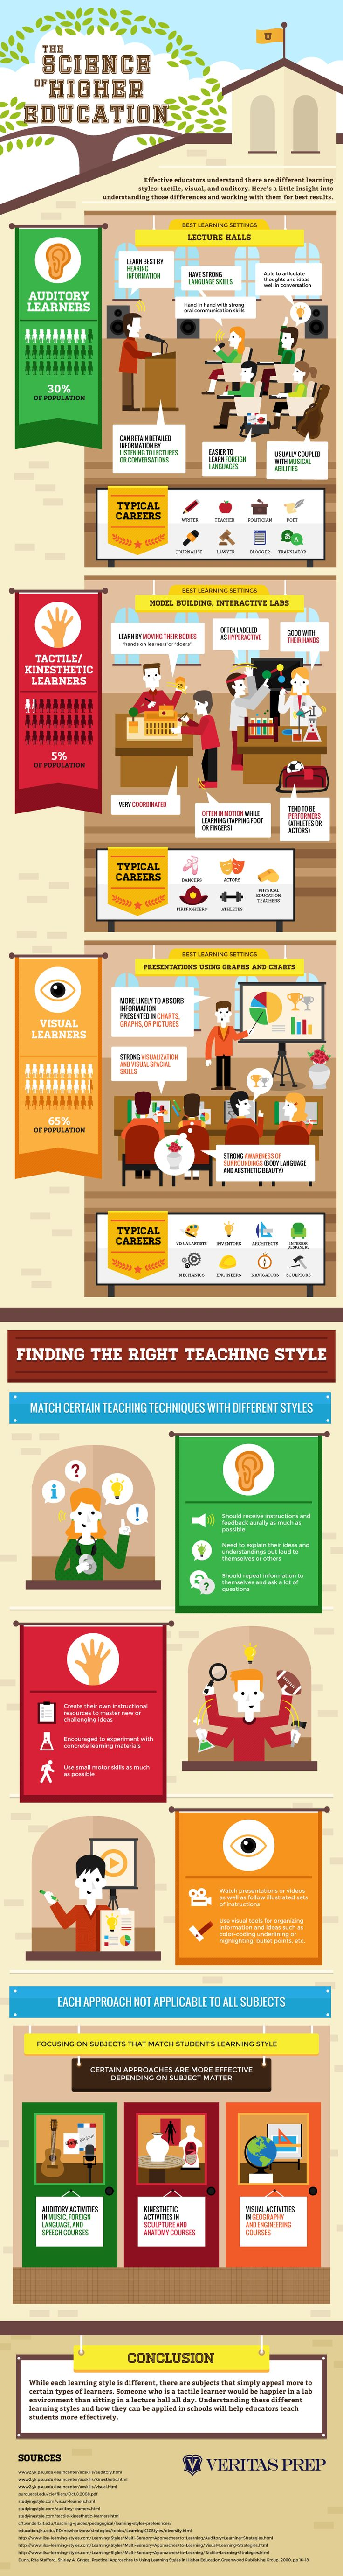 The Science of Higher Education #HigherEducation #infographic #Education